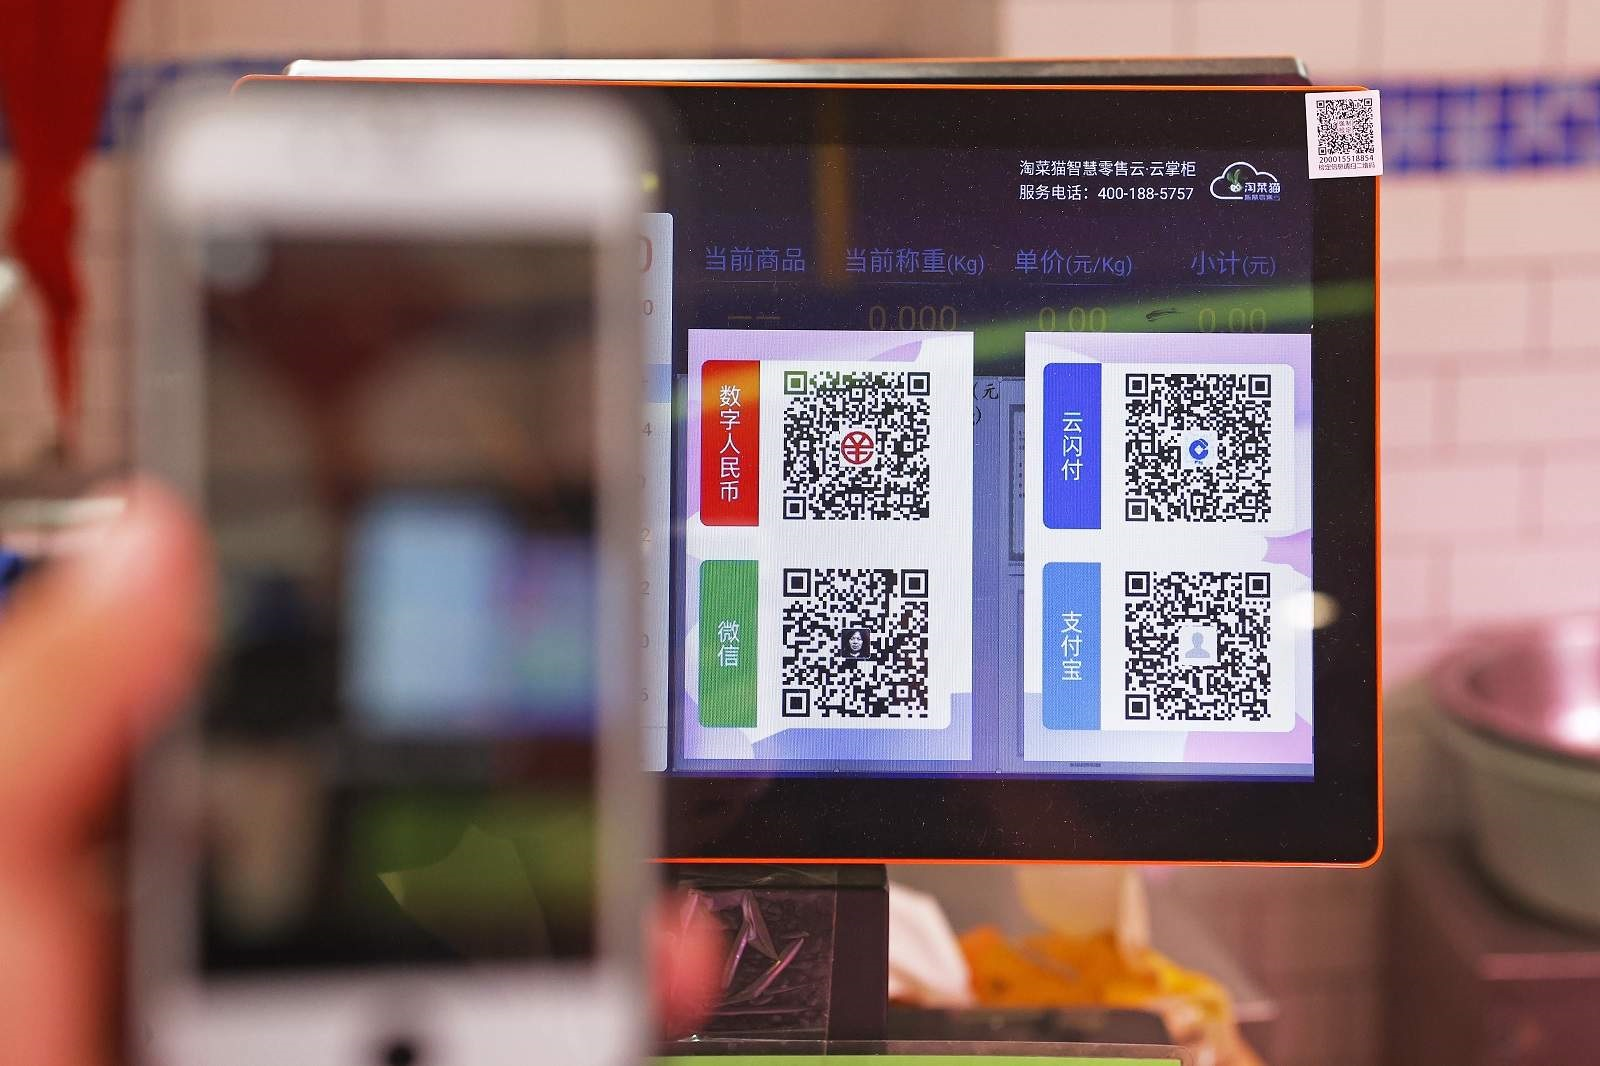 A customer chooses from QR payment codes for digital payment services e-CNY, UnionPay, Alipay and Wechat at a vegetable market in Shanghai on 7 May 2021 (Yin Liqin/China News Service via Getty Images)